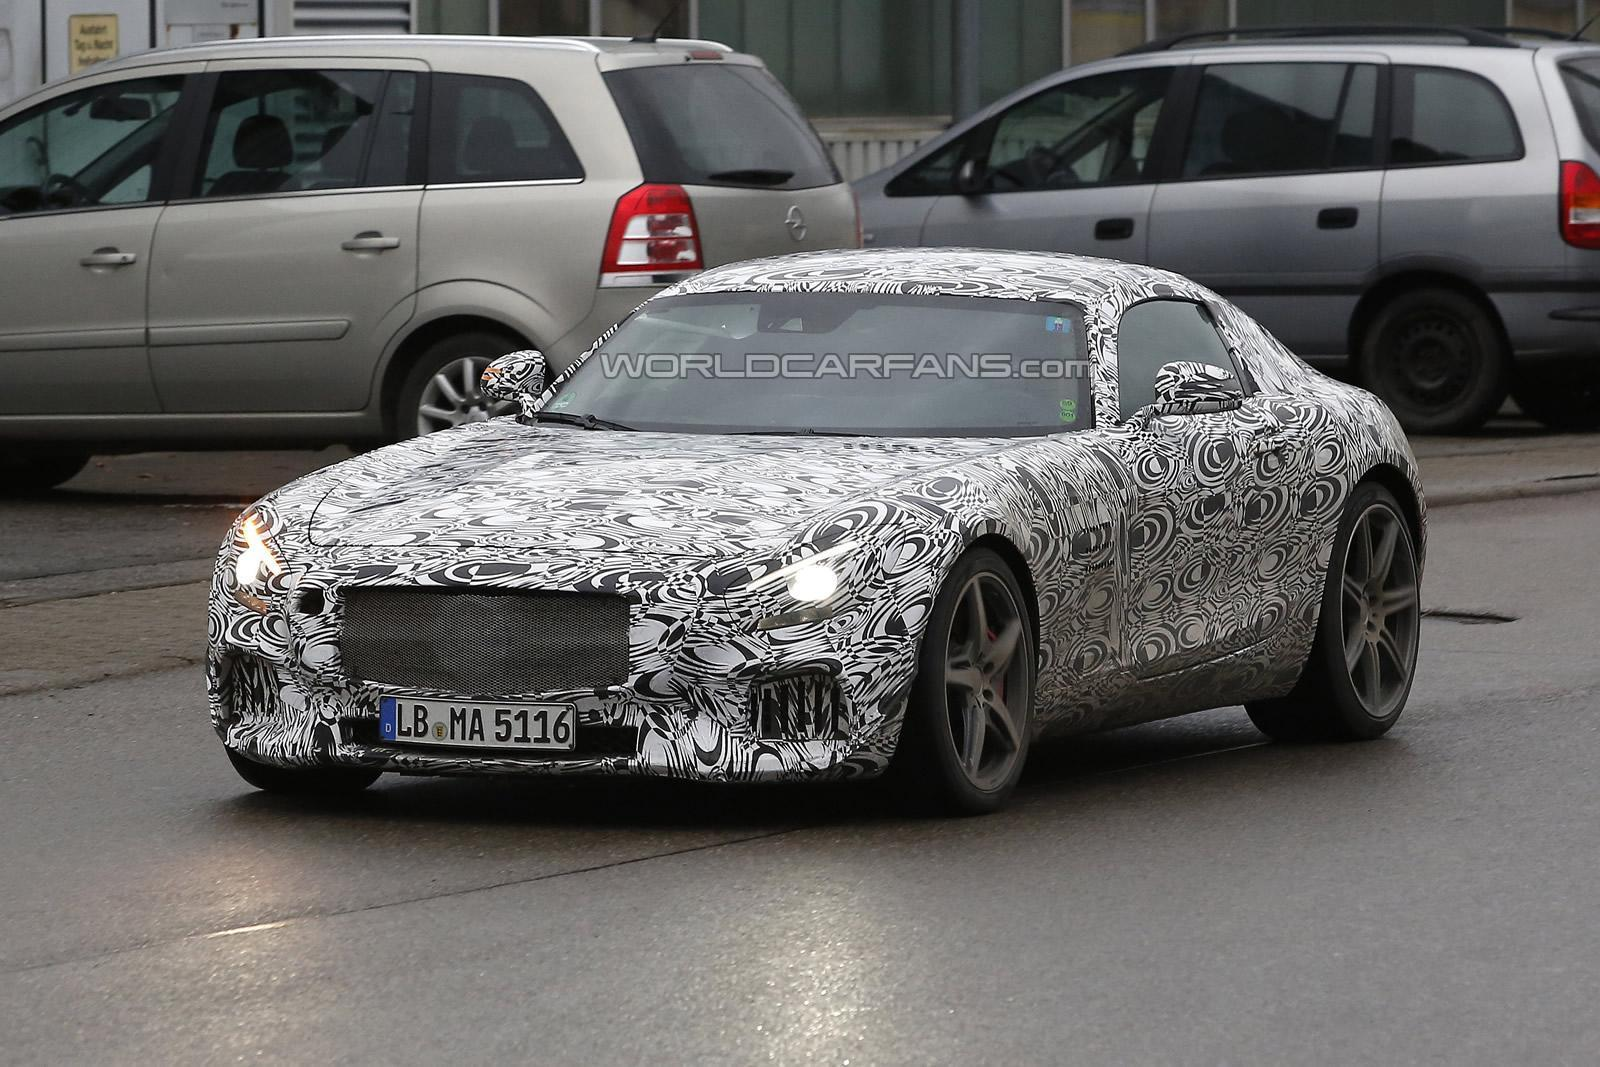 Original Spy Shot of 2015 Mercedes AMG GT